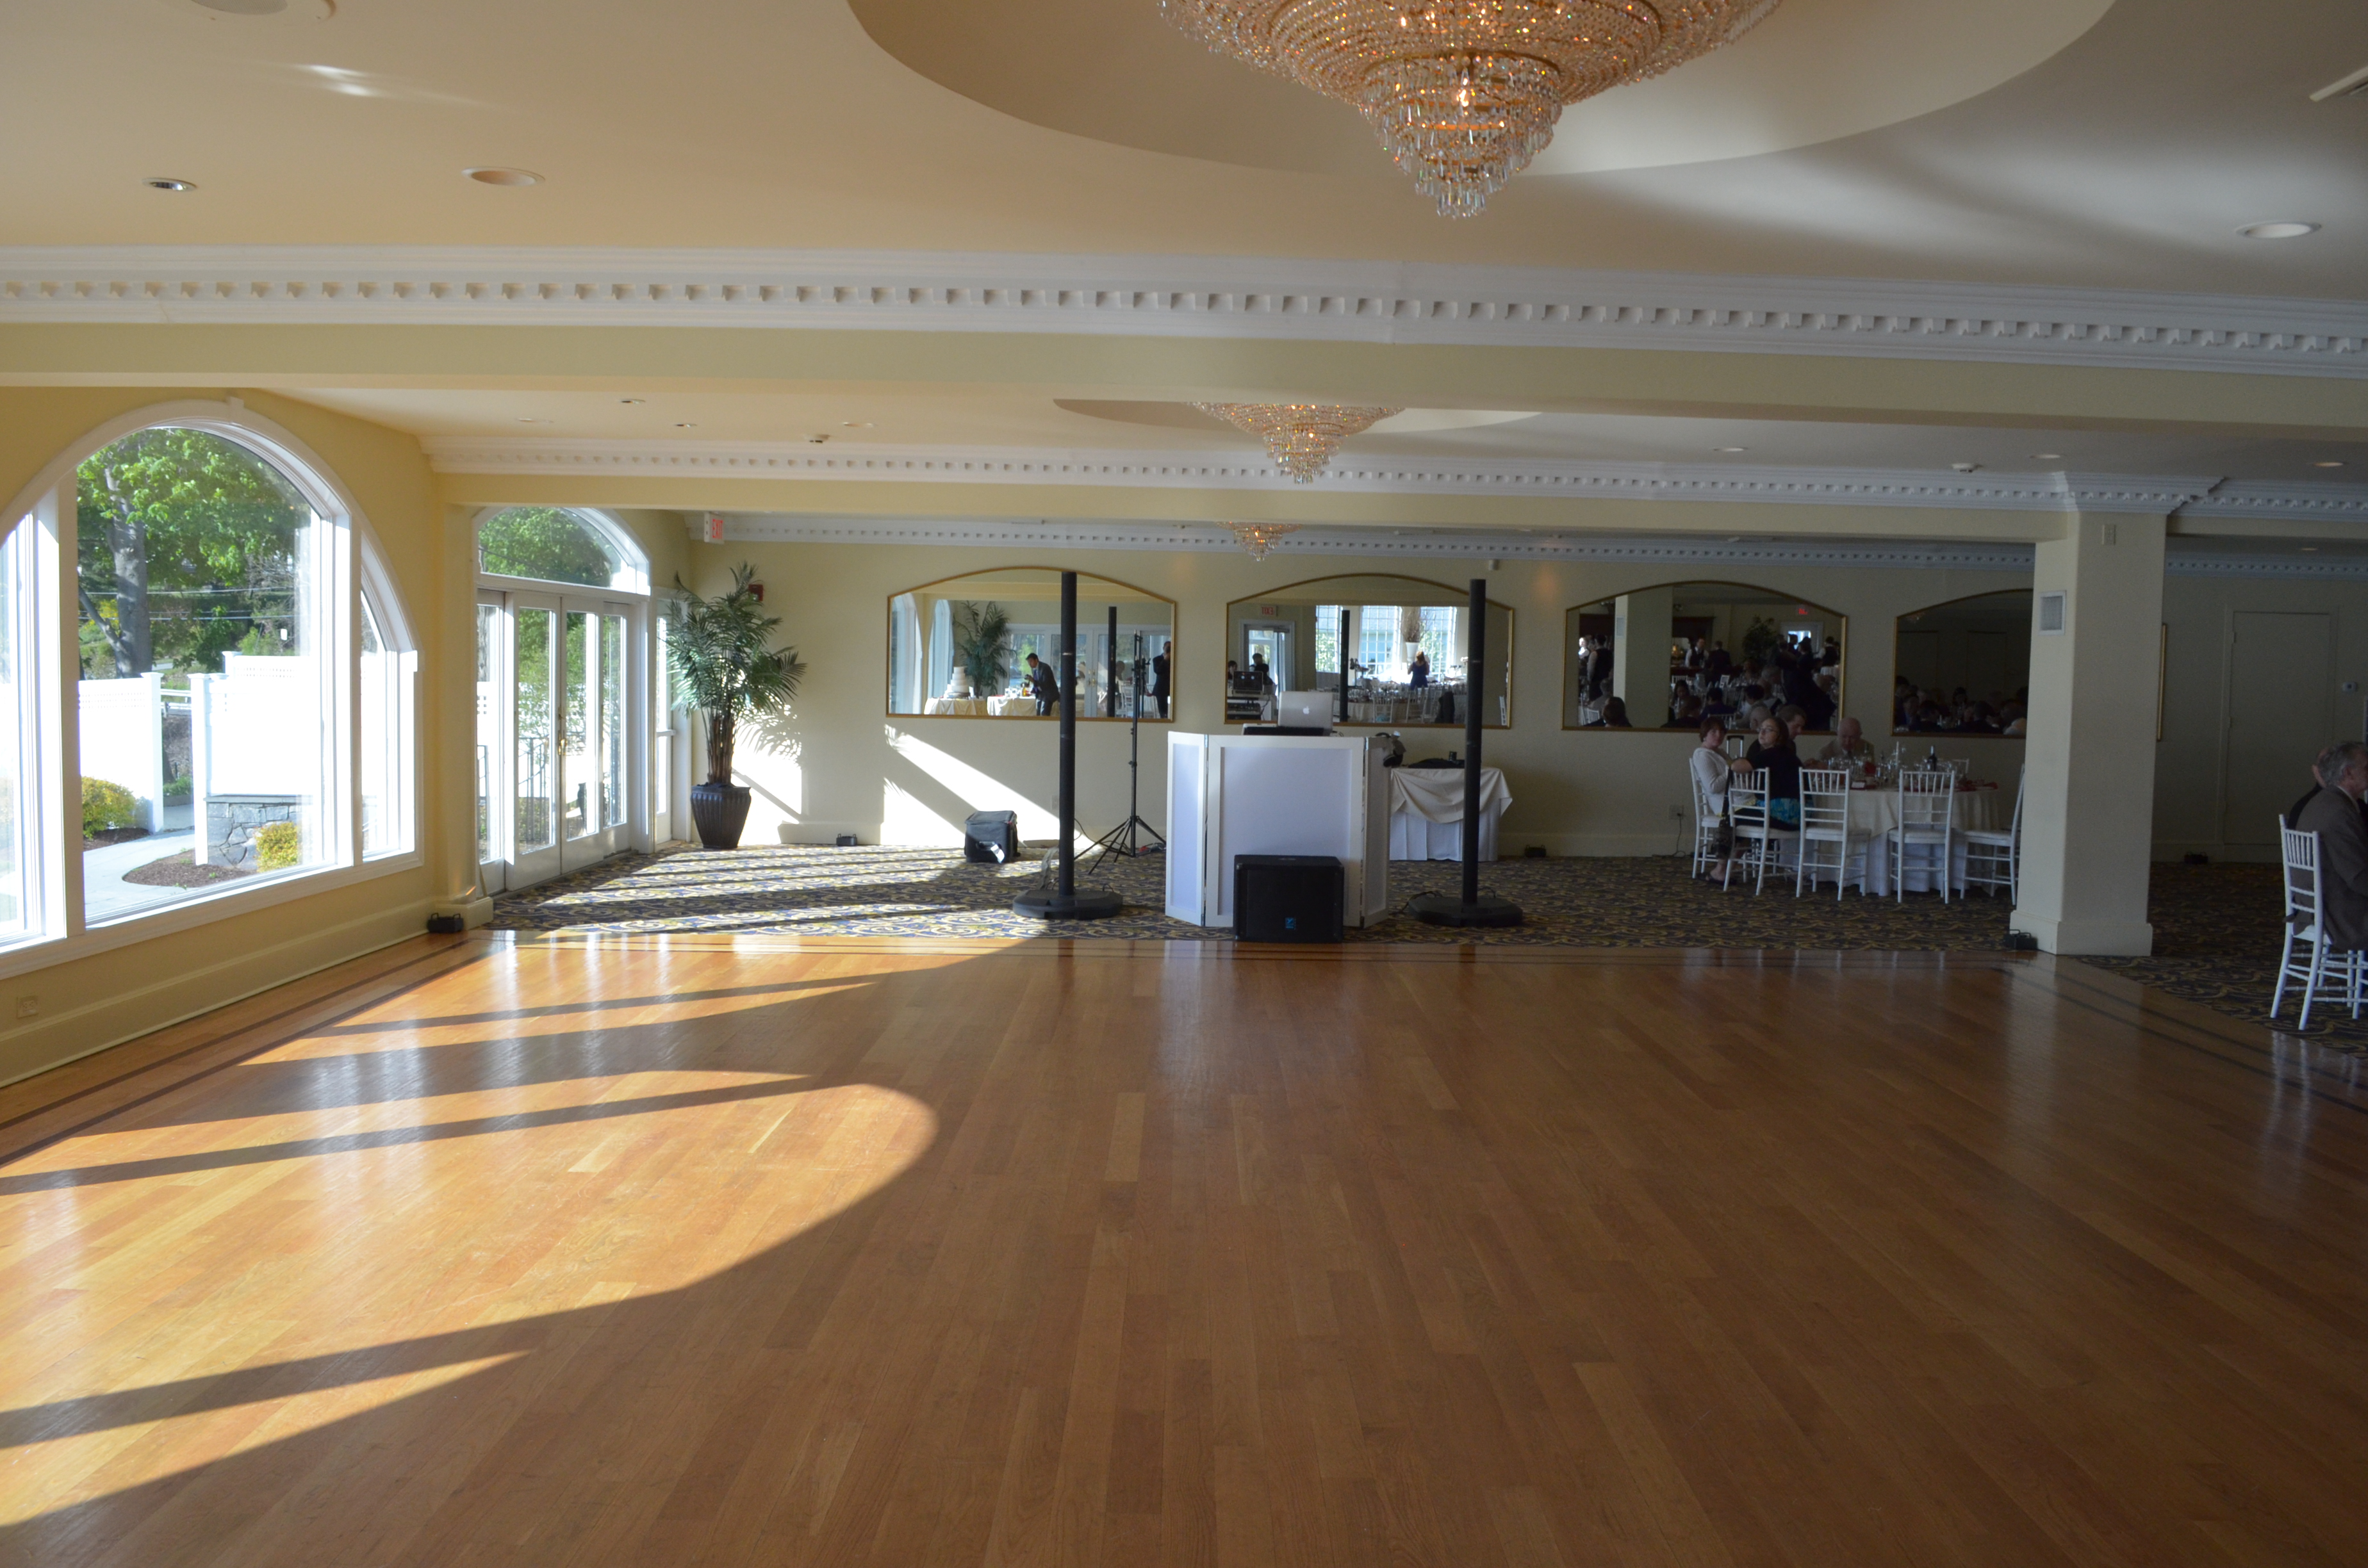 Candlewood inn a perfect blend entertainment candlewood inn a perfect blend entertainment junglespirit Image collections